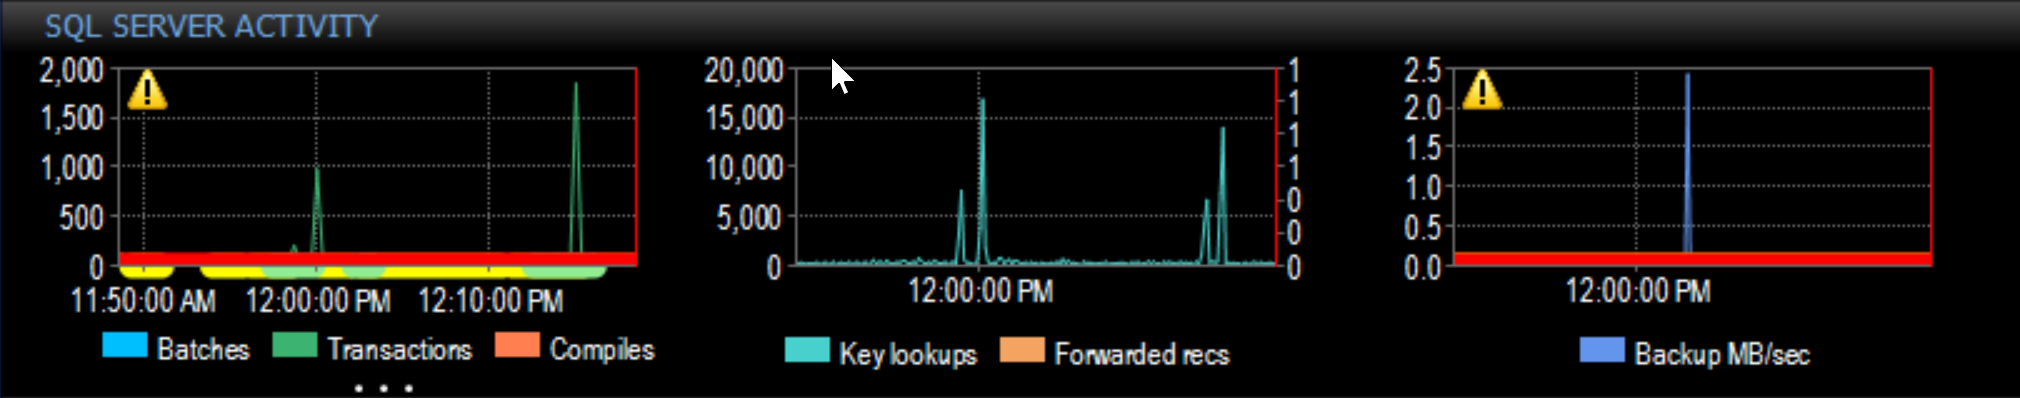 SentryOne Performance Analysis Dashboard SQL Server Activity graph